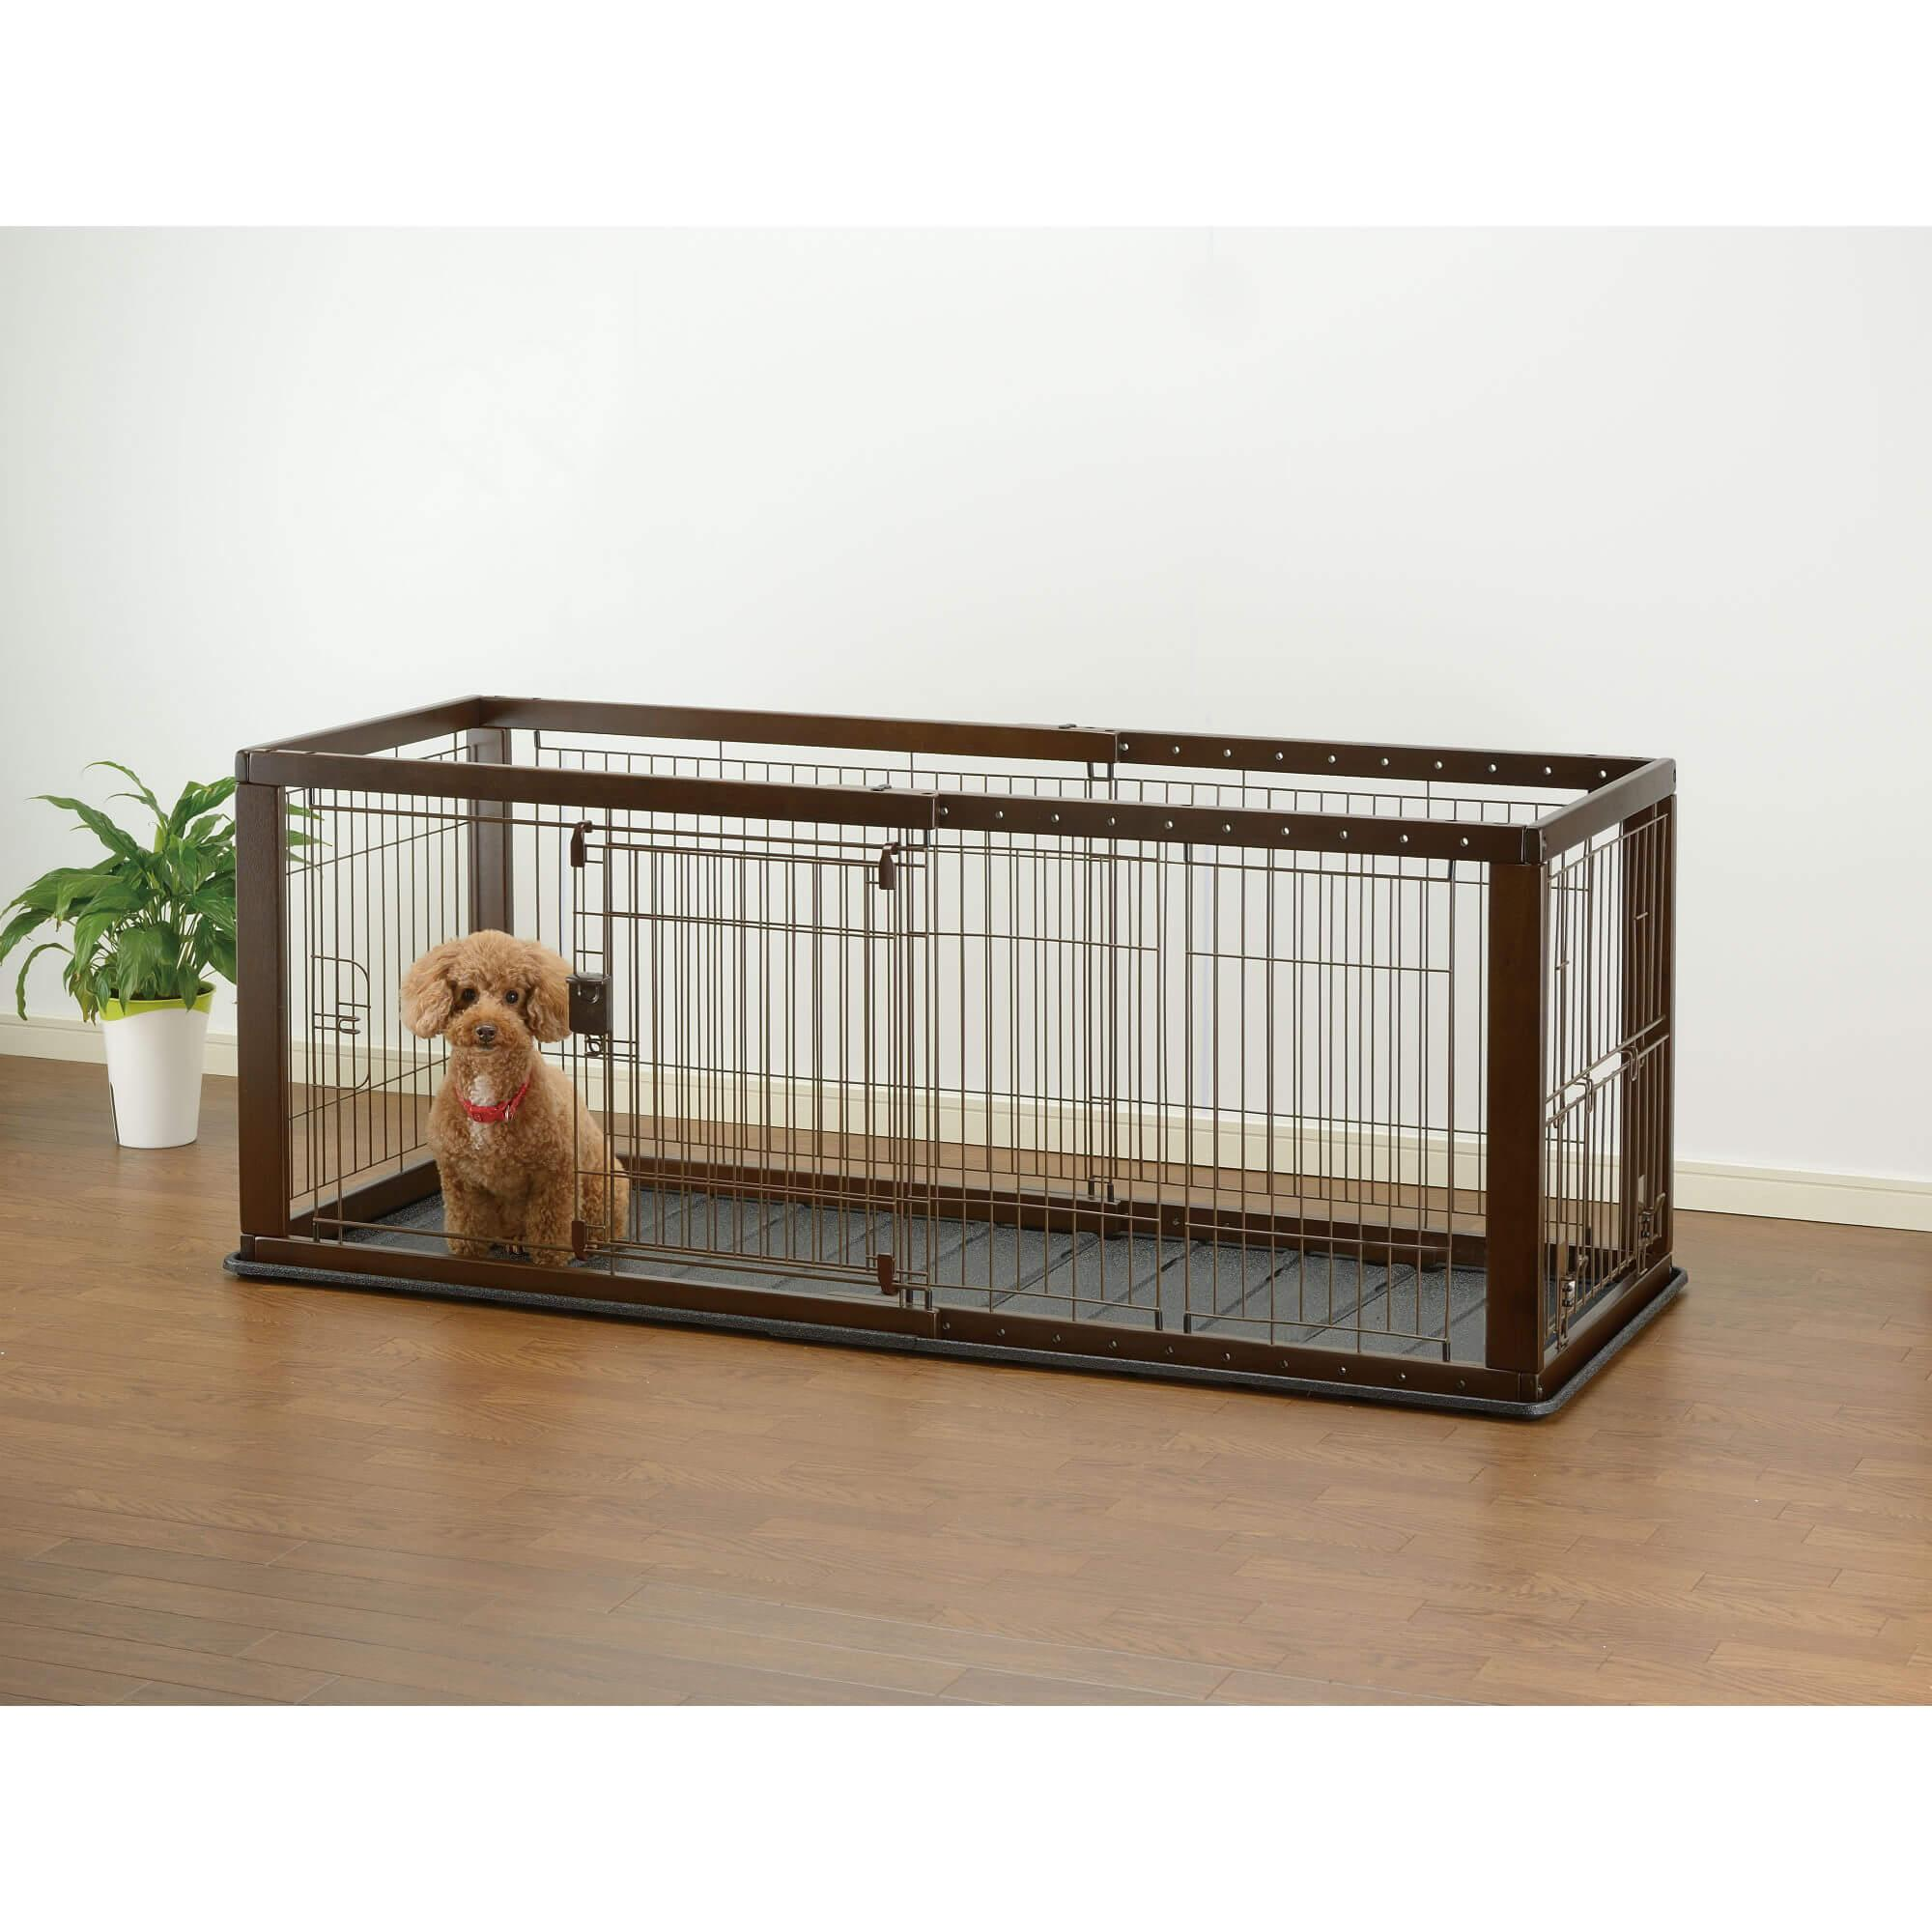 Expandable Dog Crate - Dark Brown